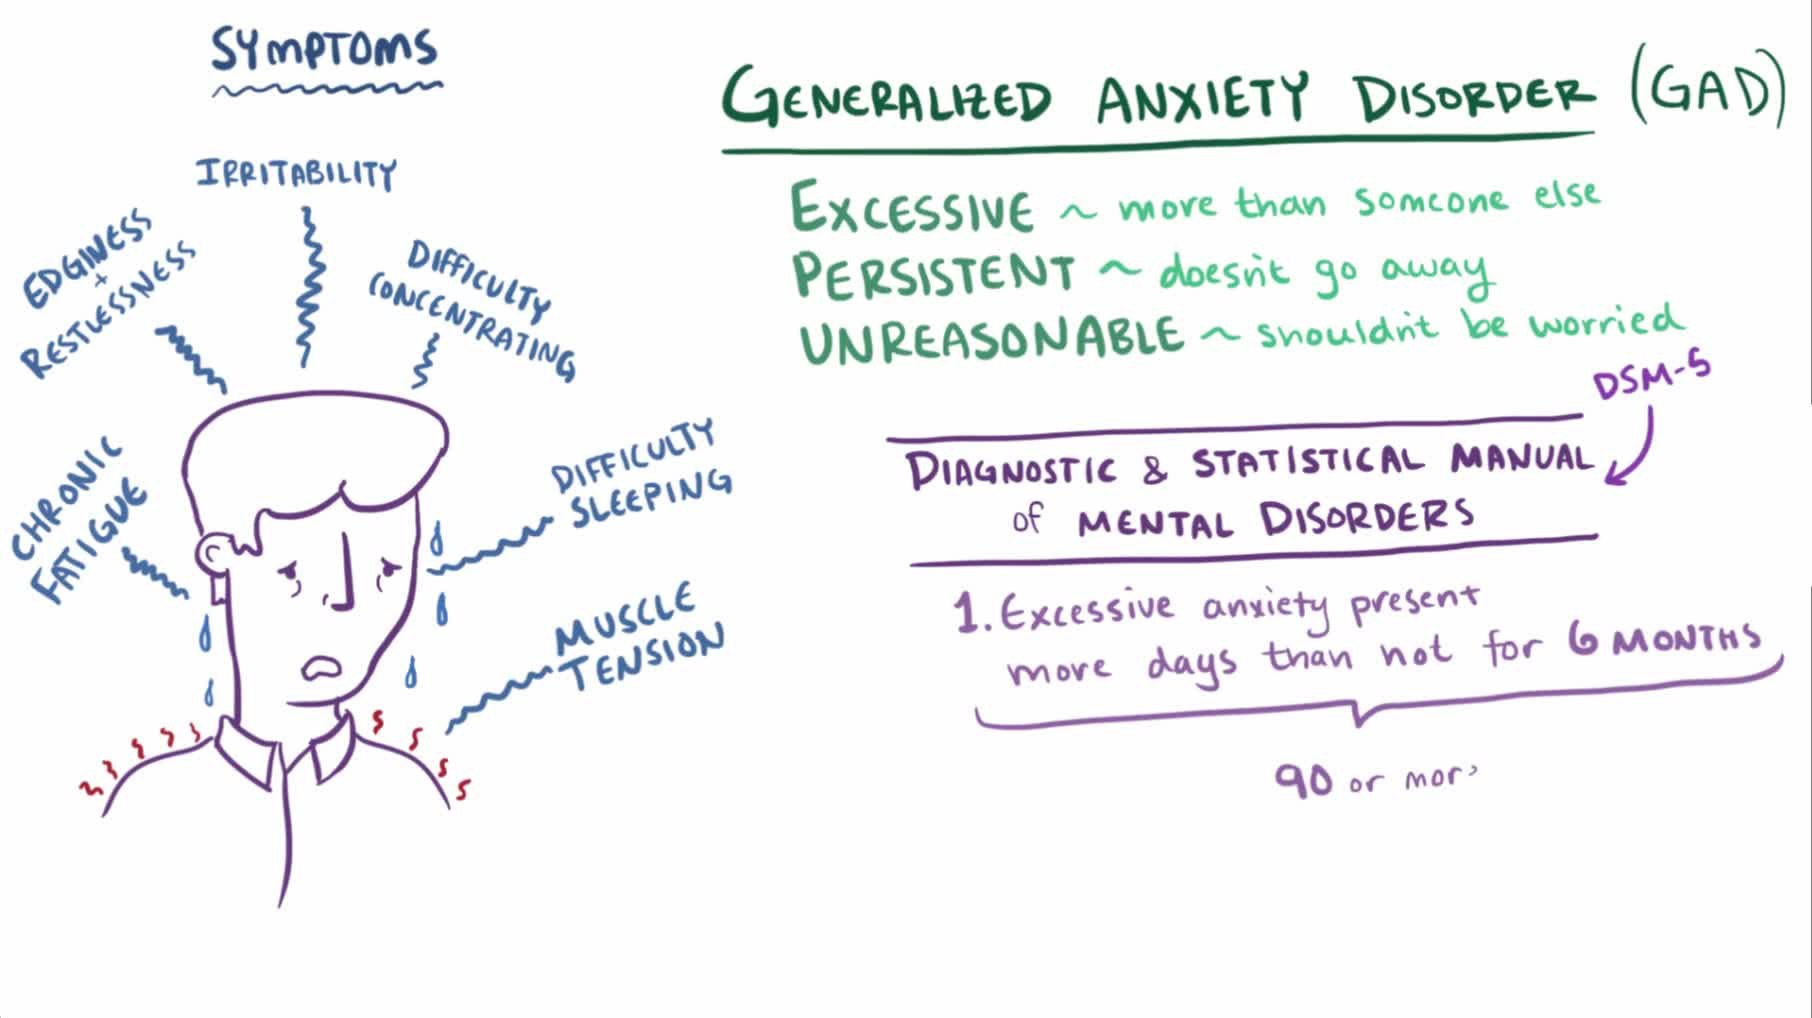 Generalized Anxiety Disorder Statistics